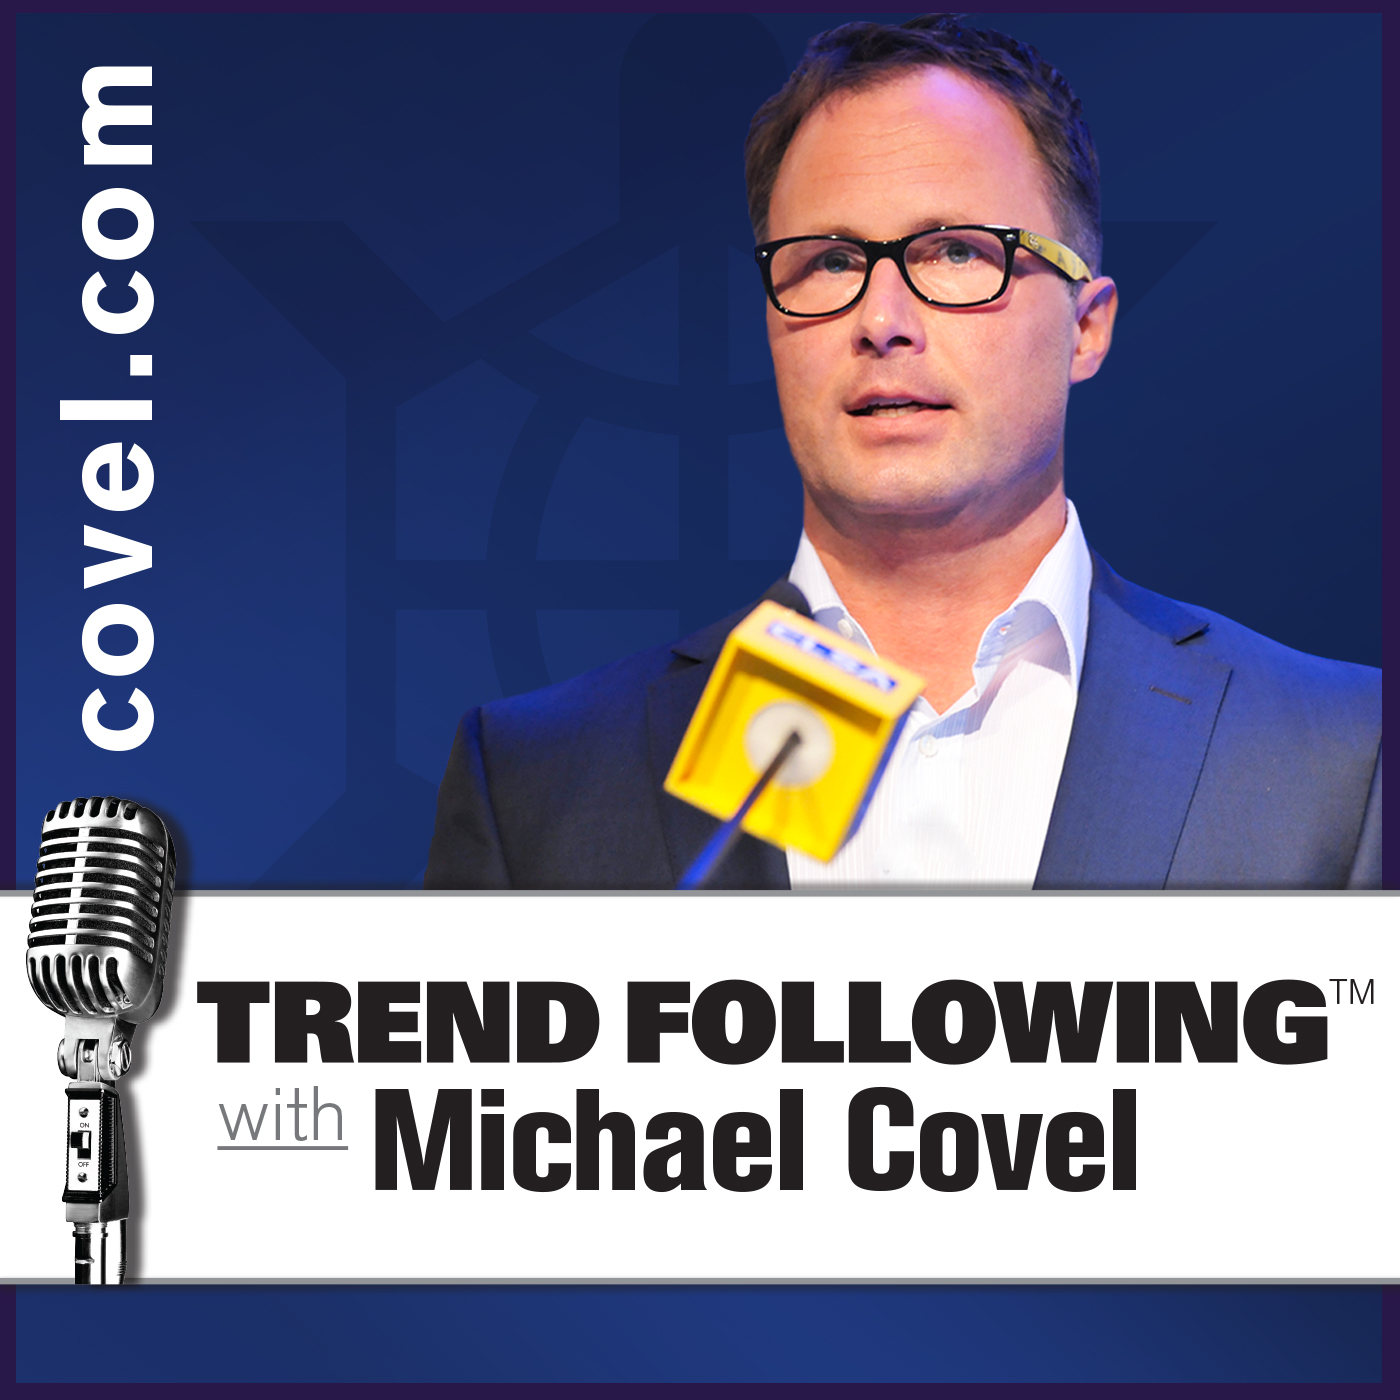 Ep. 489: Chris Voss Interview with Michael Covel on Trend Following Radio